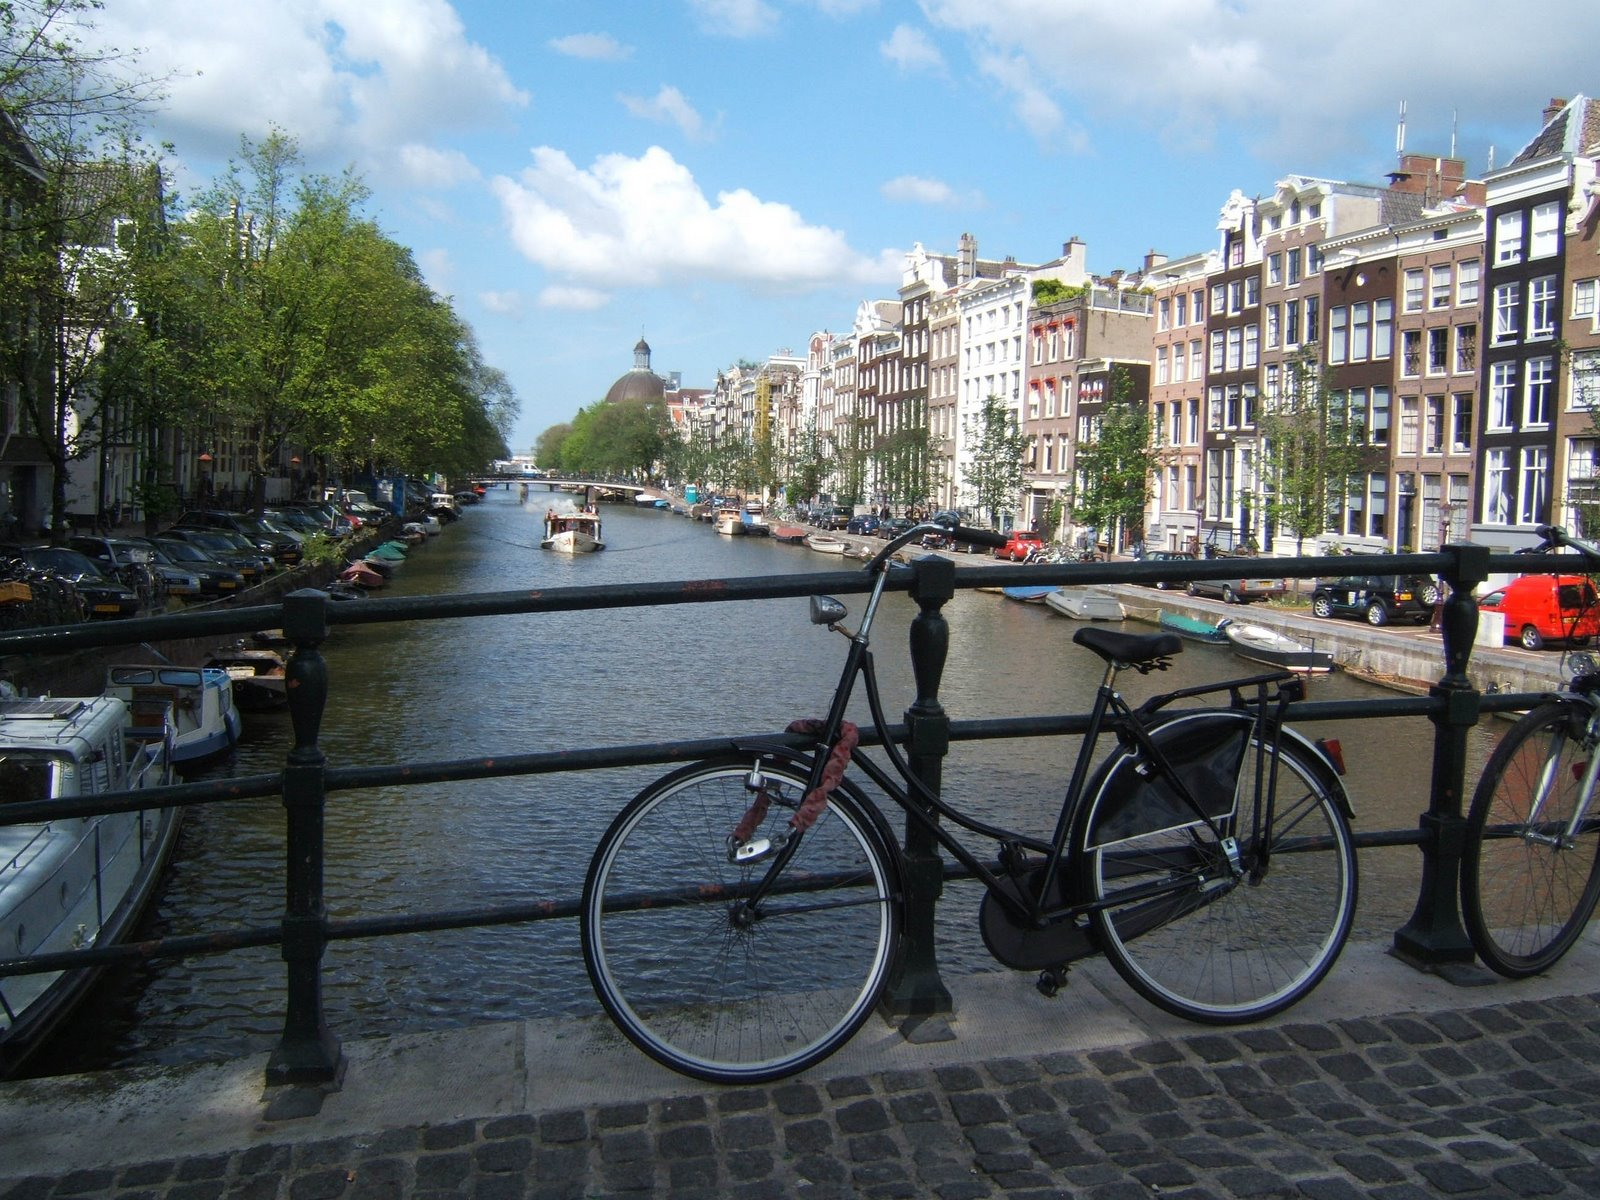 Bikes and Bridges, Amsterdam.  Watch out for the cyclists, they mean business!